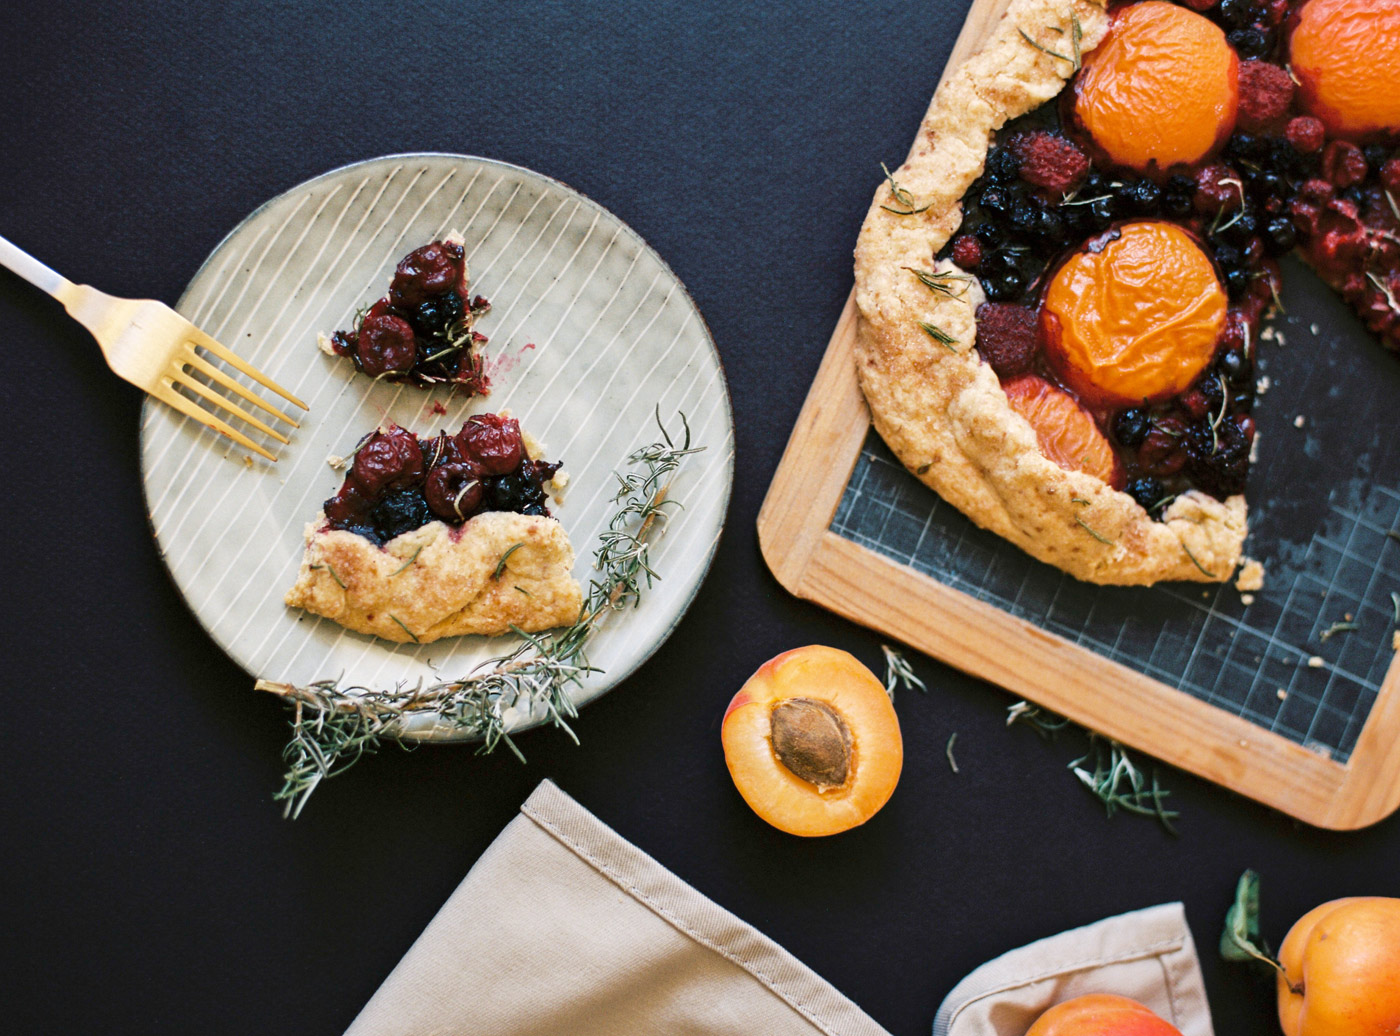 Blanccoco_Rustic_pie_styliste_photographe_culinaire-7